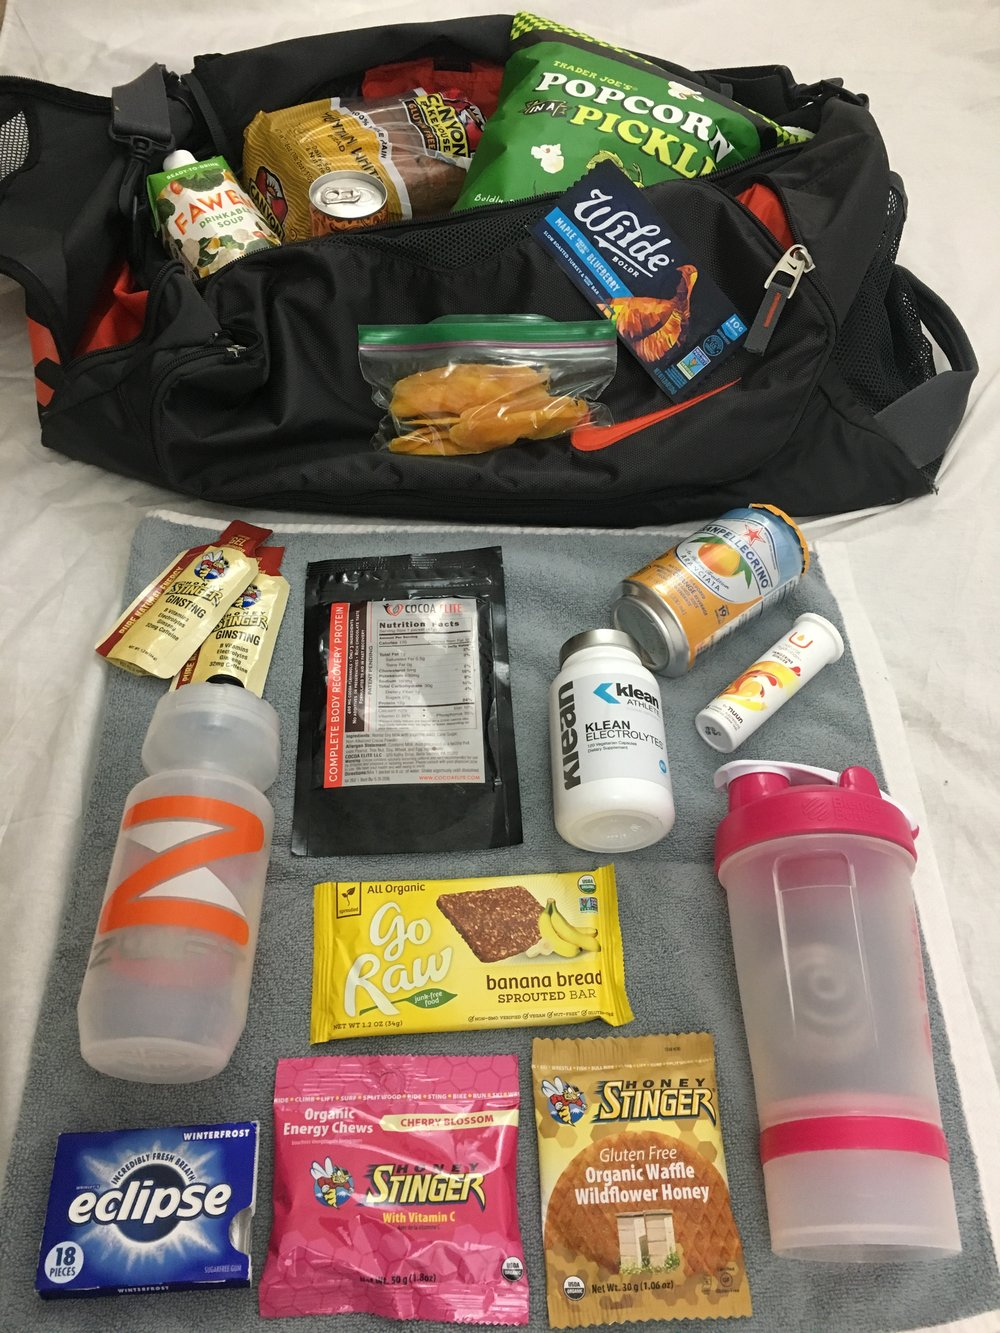 a look at my food options. I take gum along to help calm me before a race start!